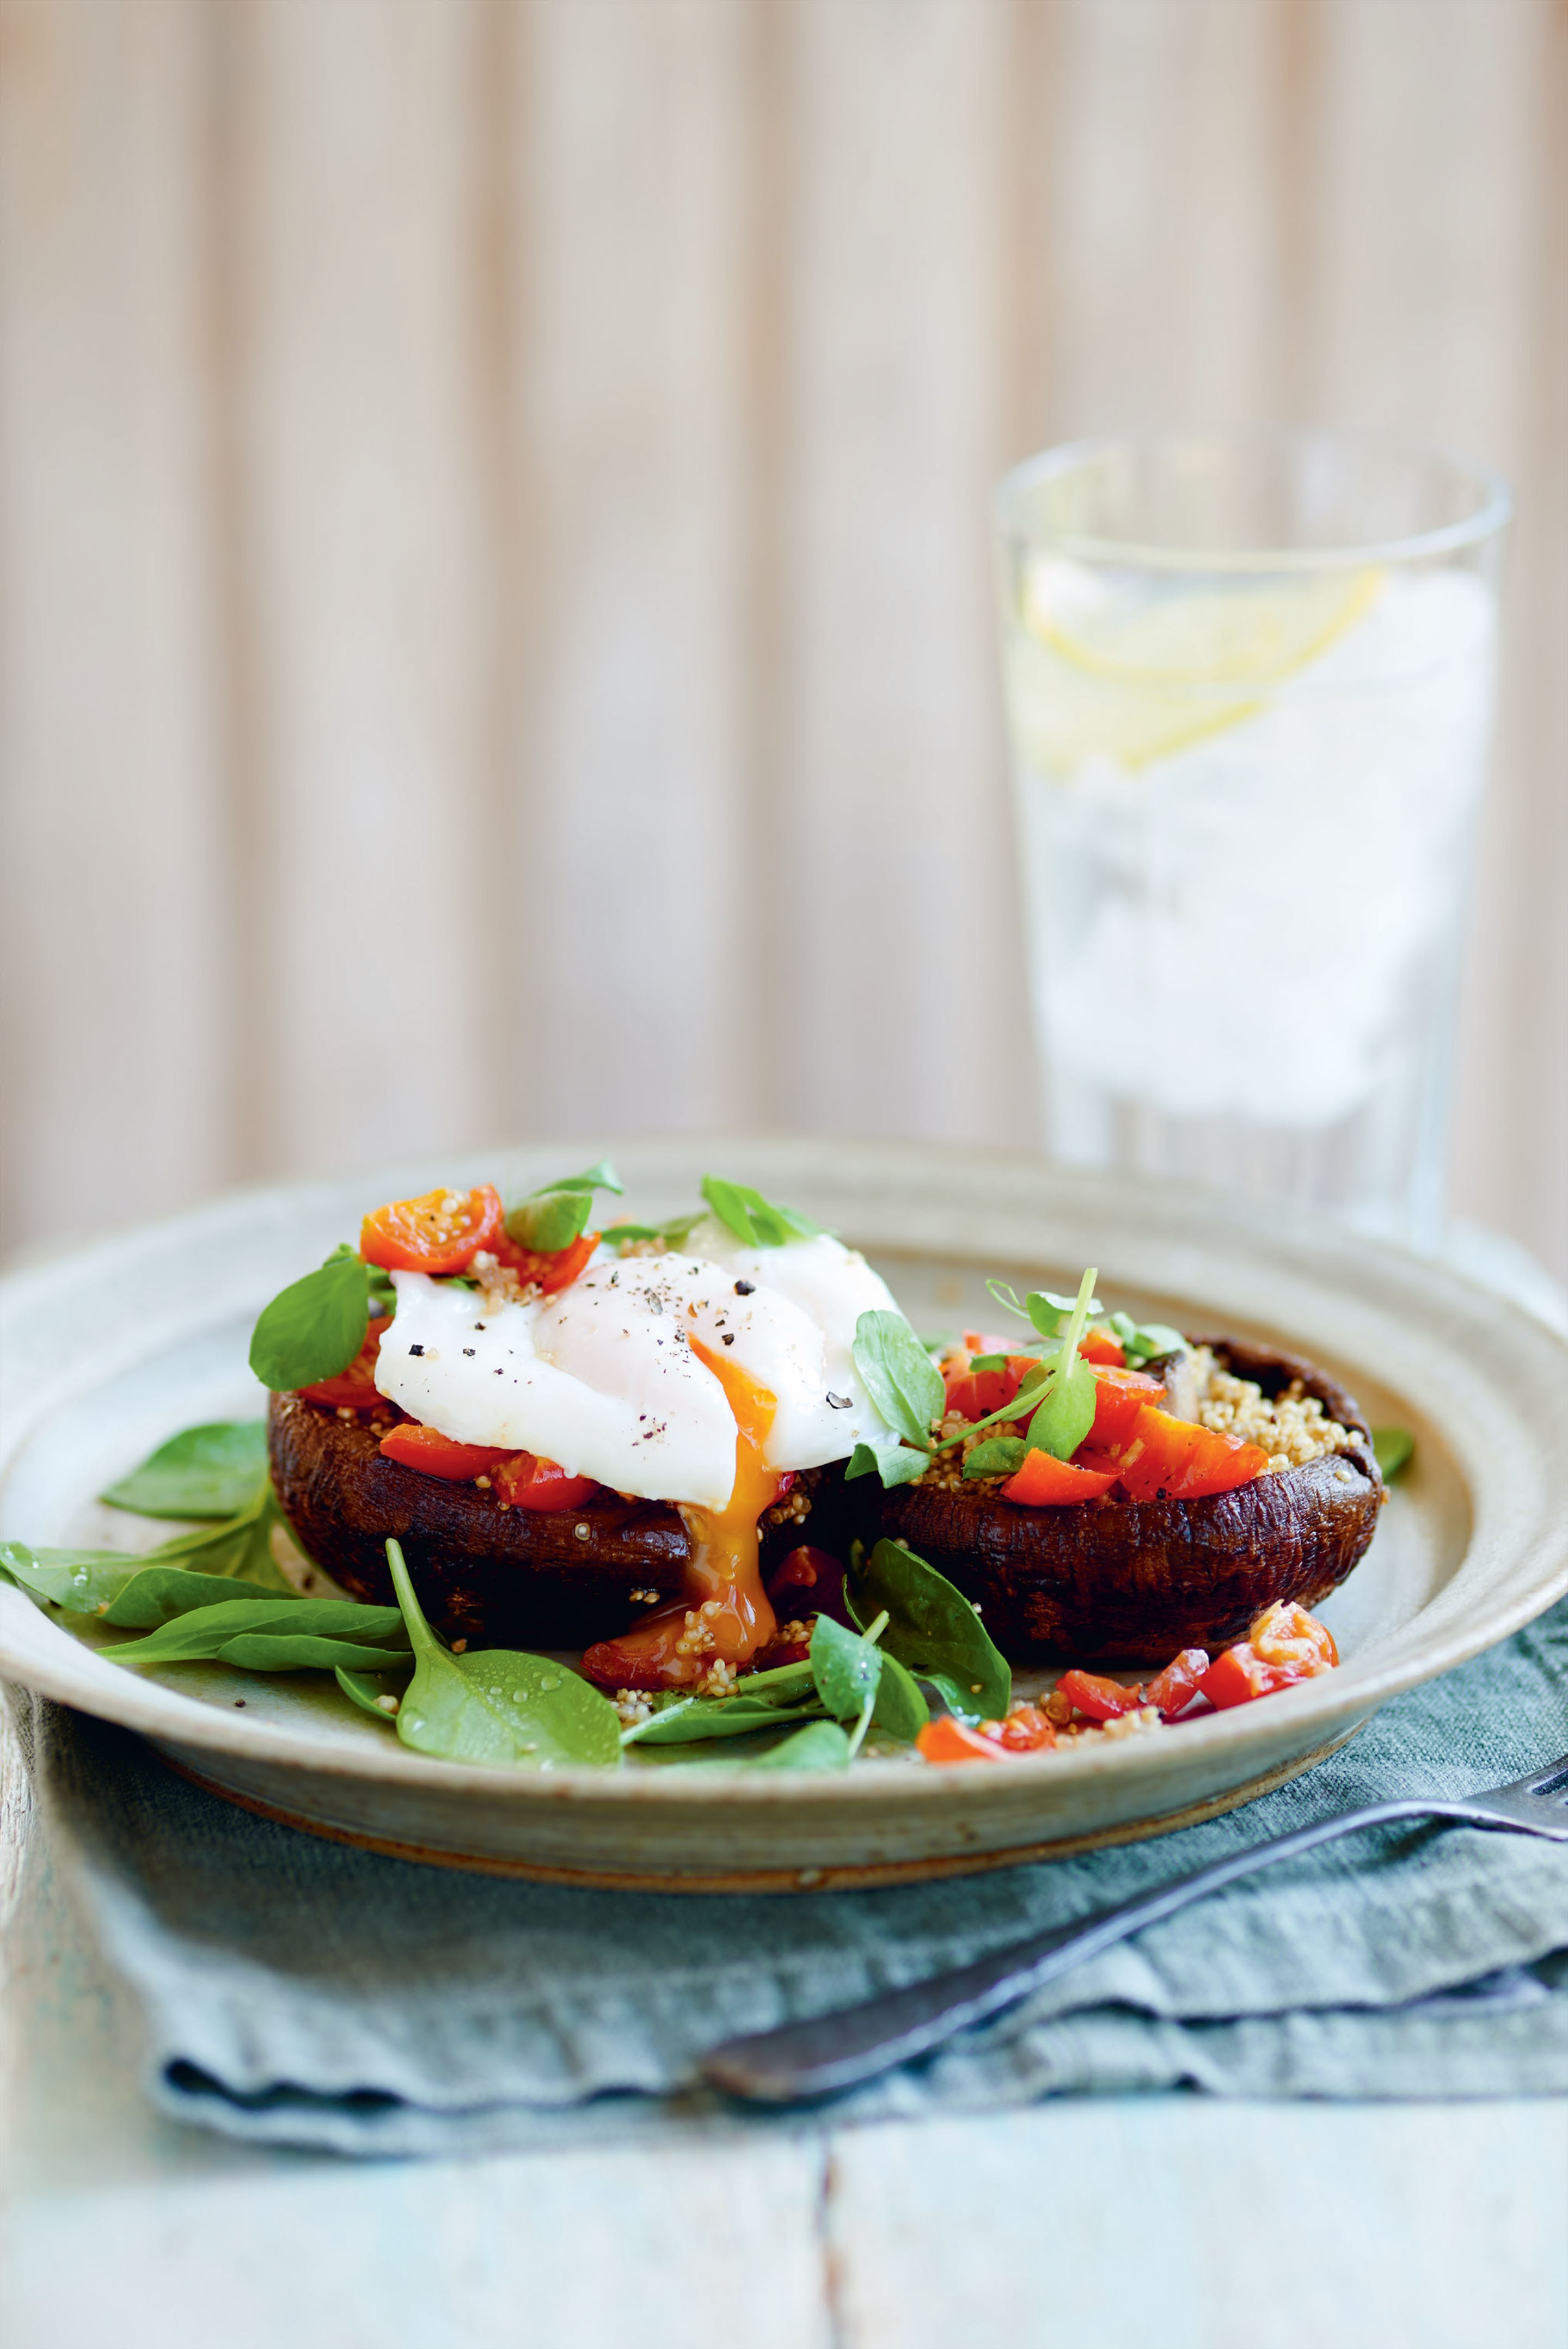 Quinoa-stuffed mushrooms with garlic tomatoes and poached egg